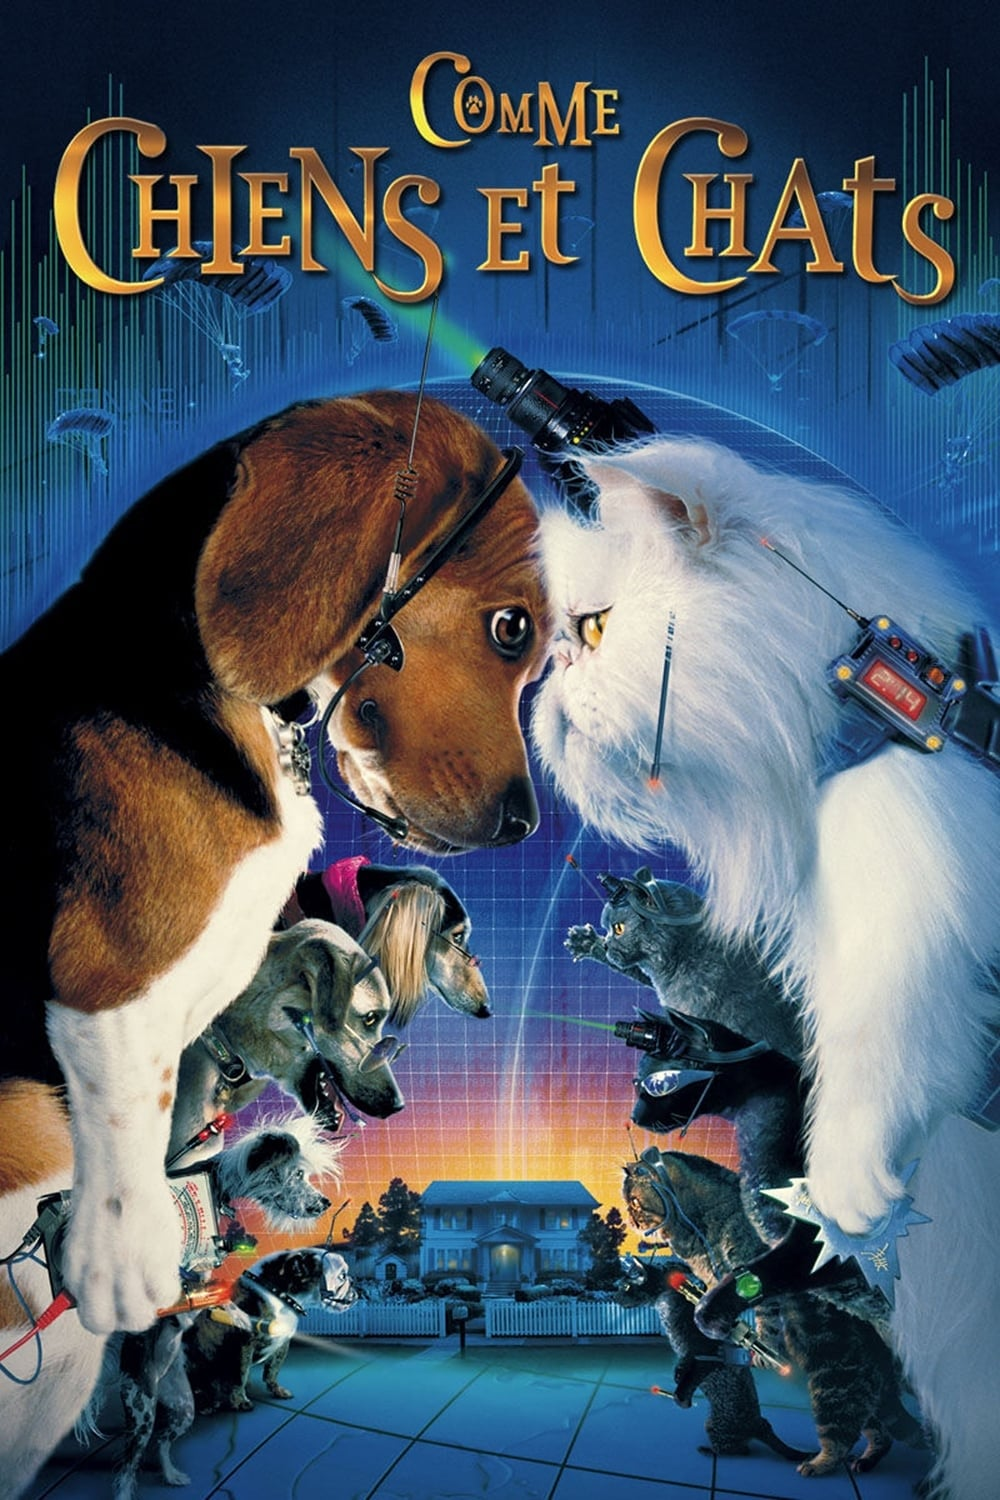 Comme-Chiens-Et-Chats-Chats-Chiens-Cats-And-Dogs-2001-7066